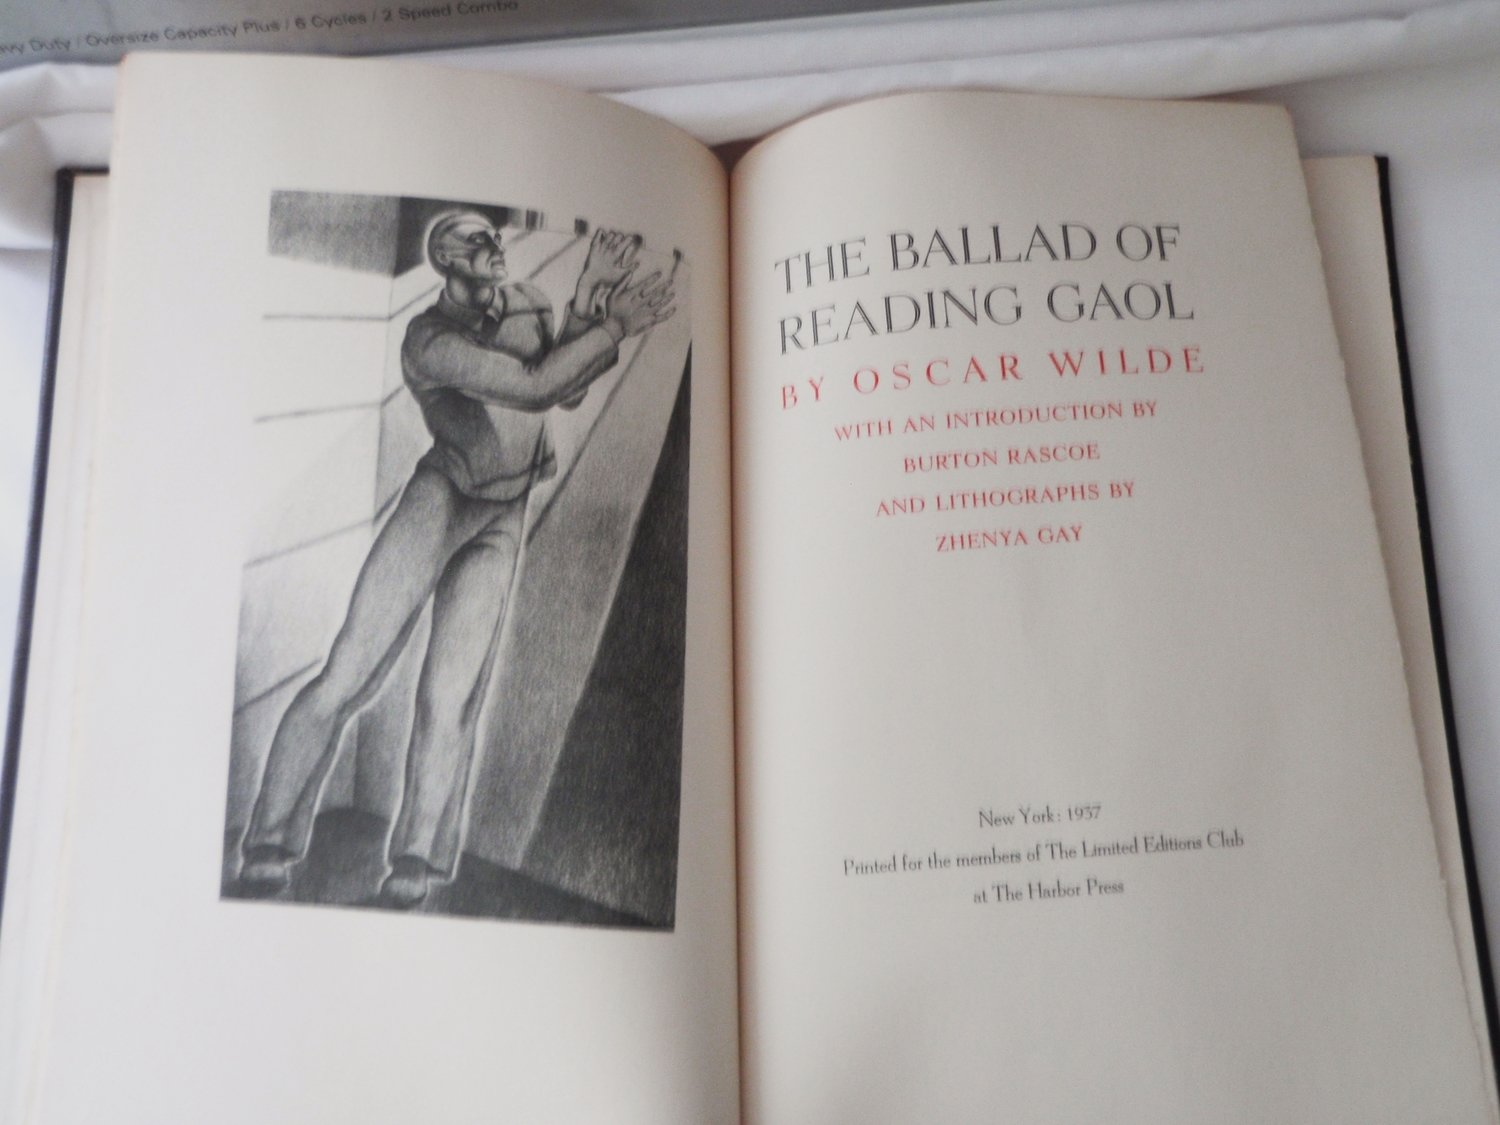 1937 Oscar Wilde The Ballad of Reading Gaol Ltd Ed 1500 - Zhenya Gay Artist Signed